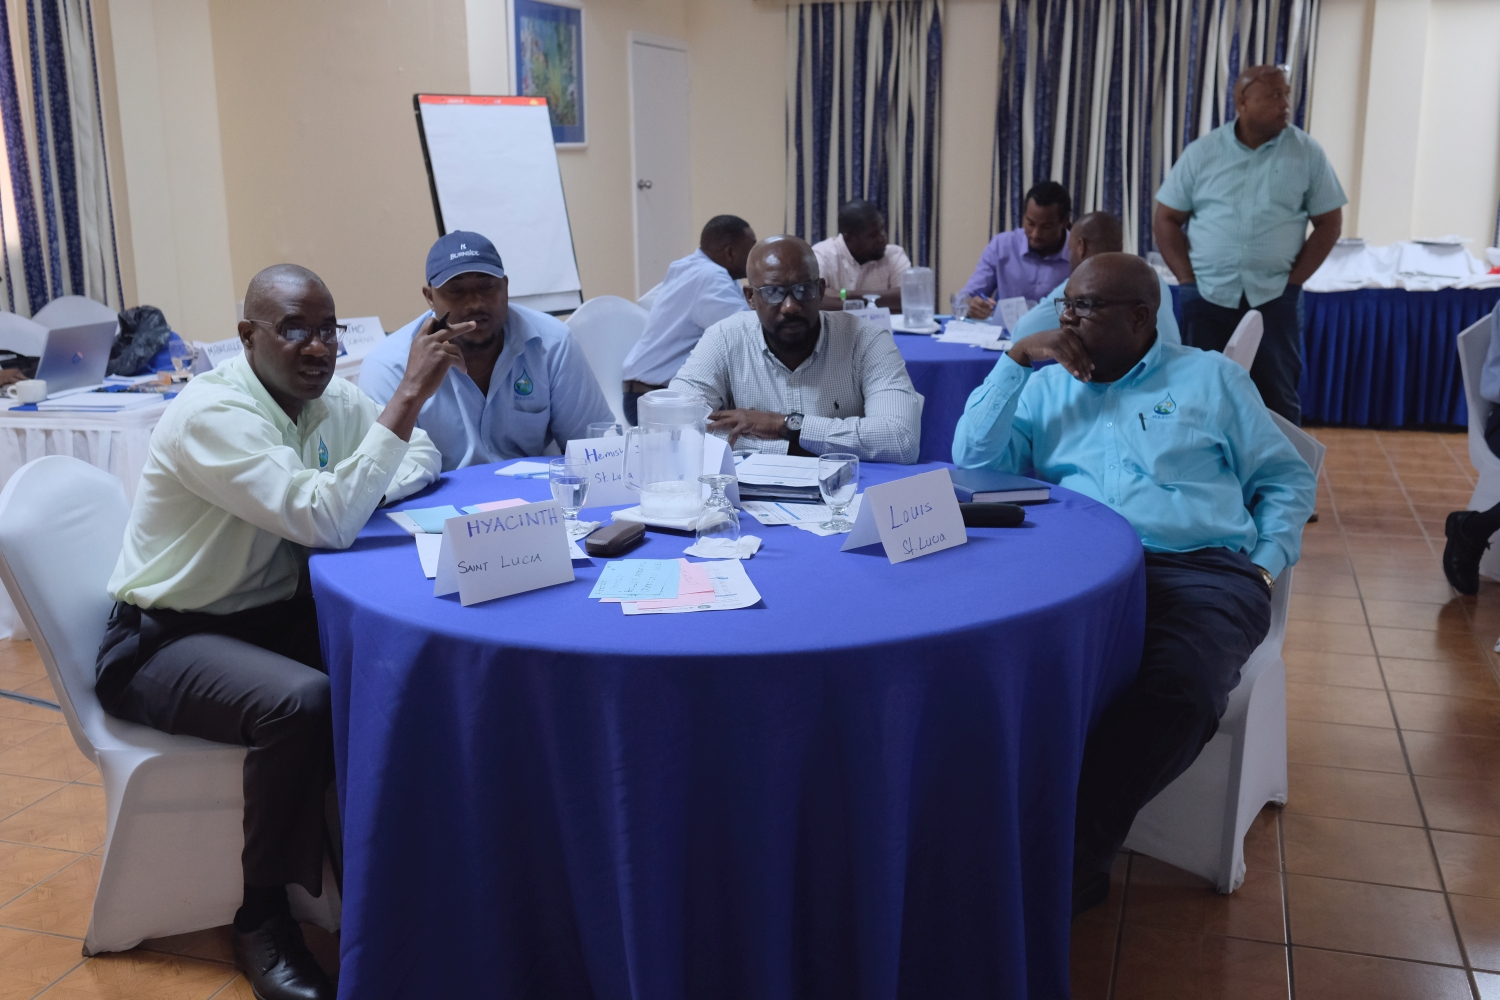 Regional Training on the Demand and Distribution of Water